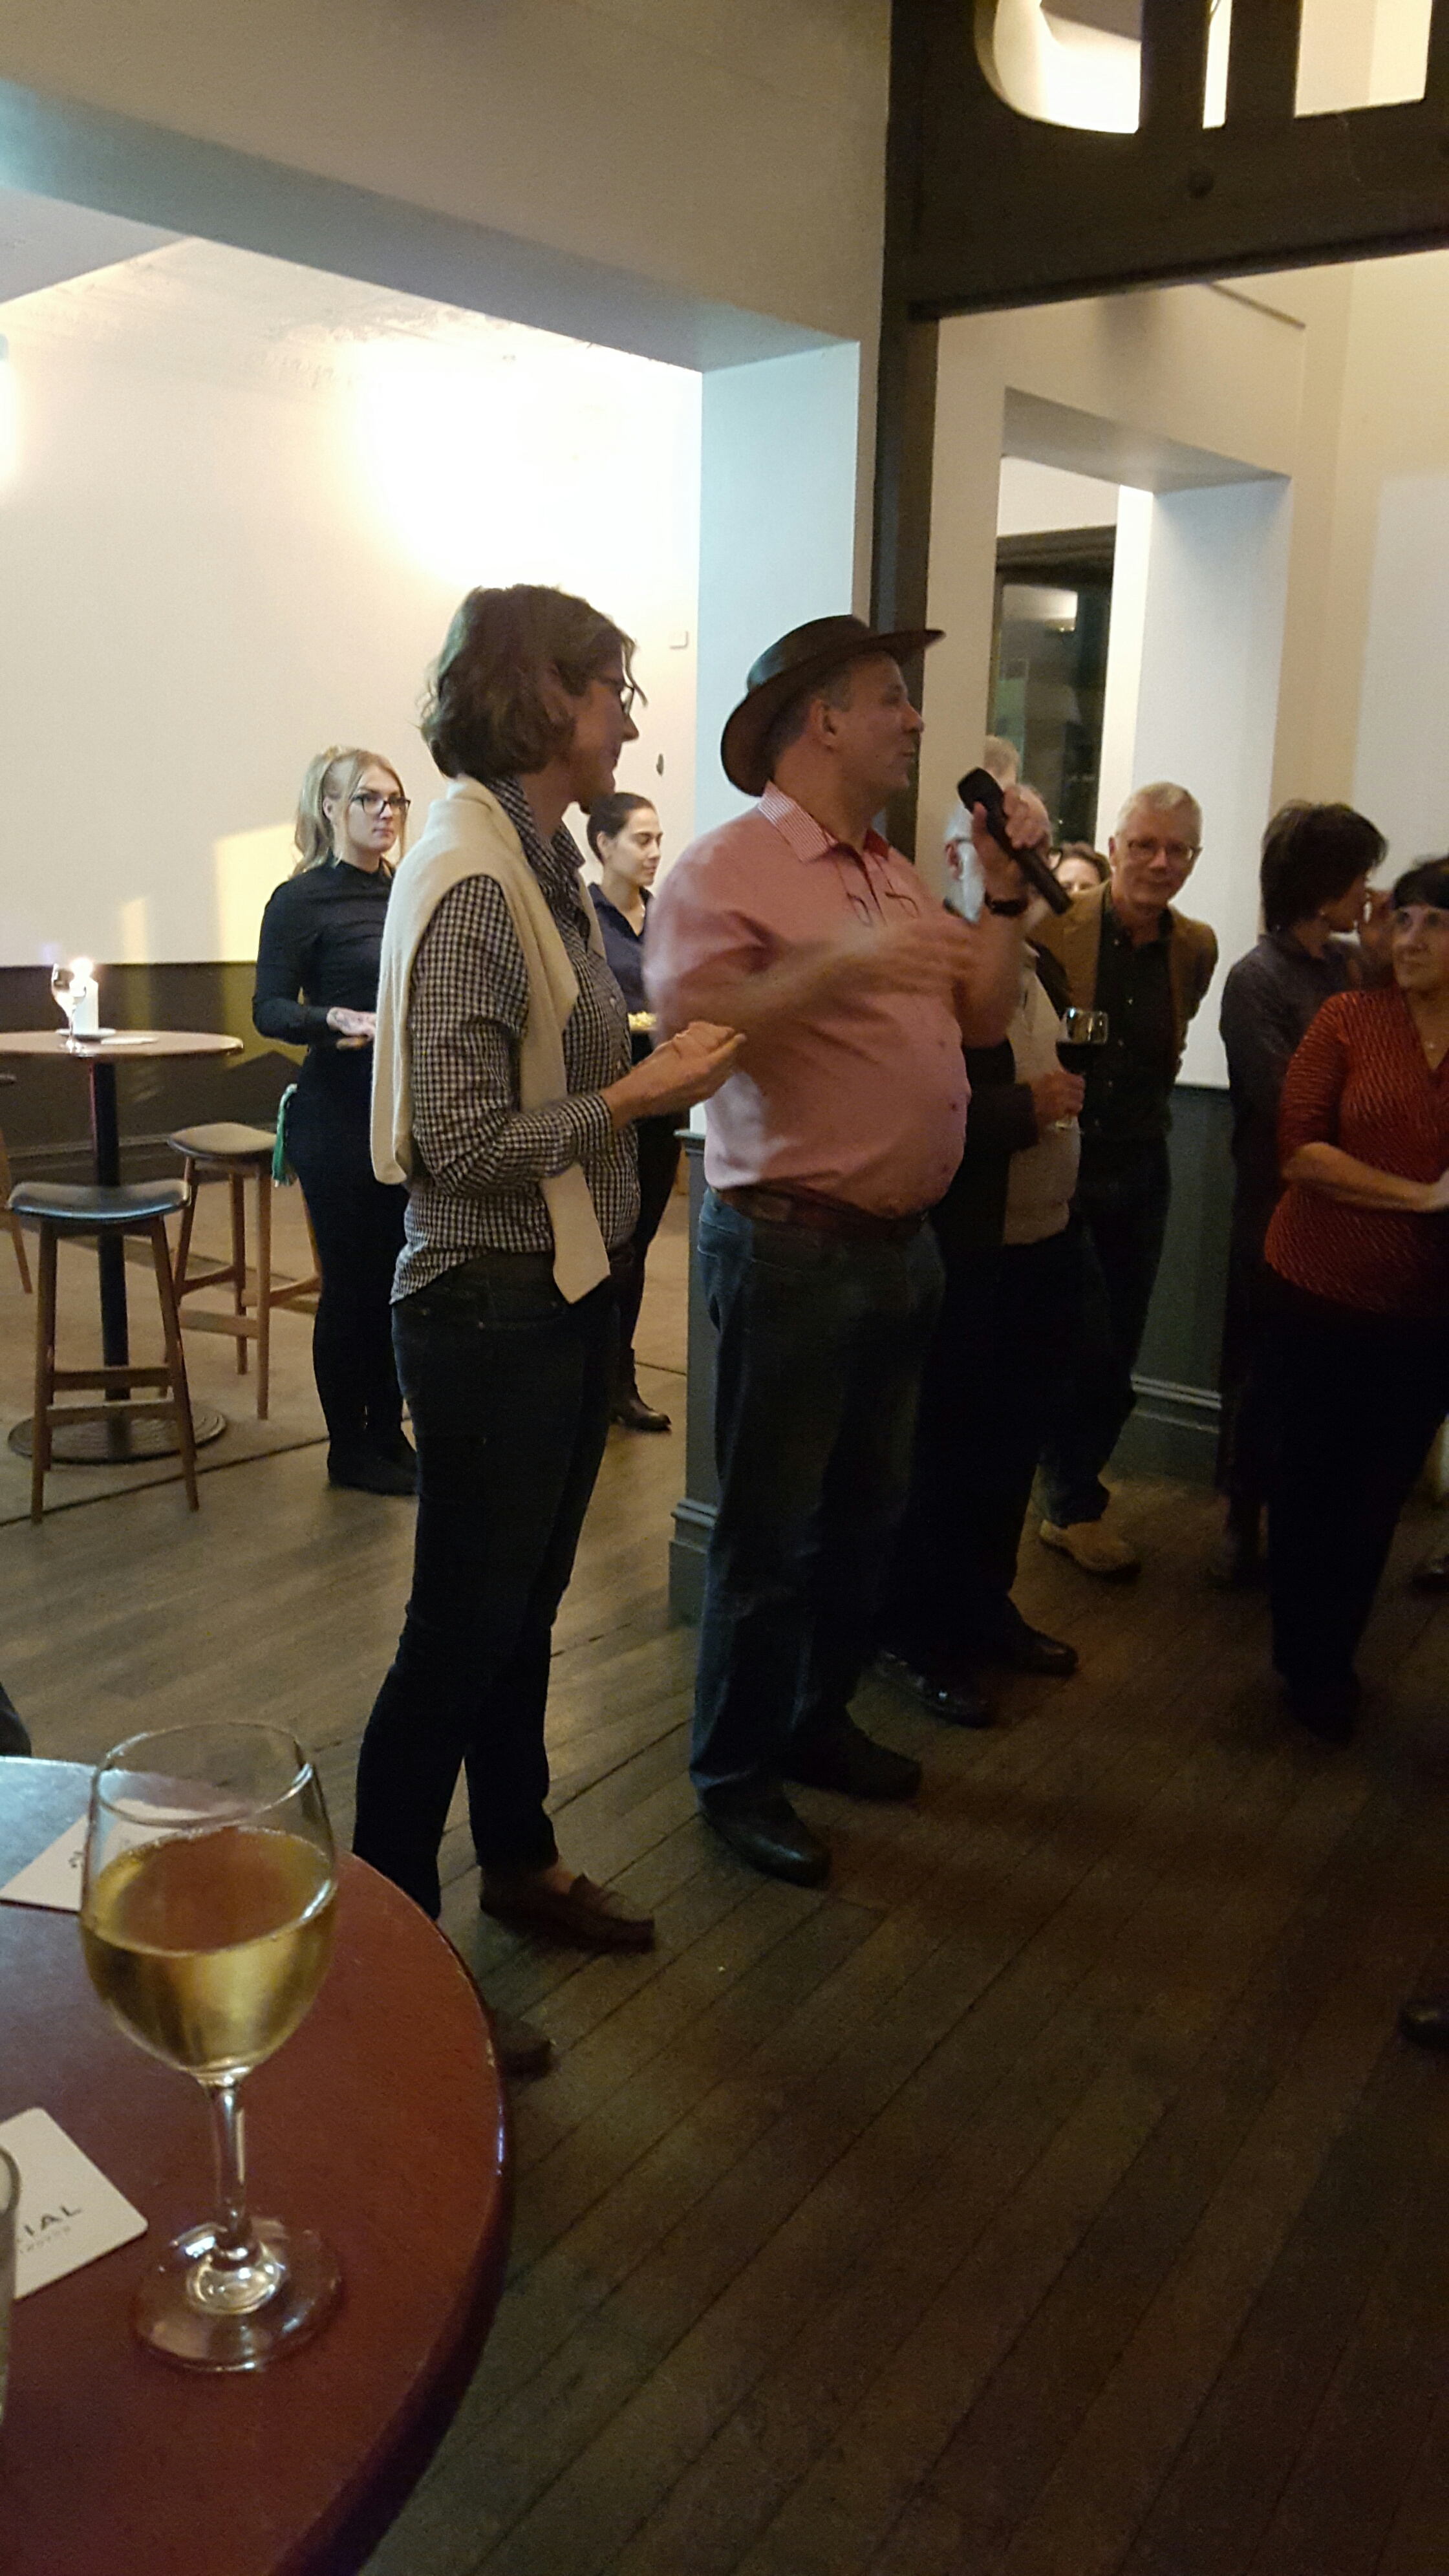 Farewell of Ernst Steinmann and Edith in true Aussie Style, with a hut and in a Pub! All the best from the whole of the Swiss Business and Social Community.